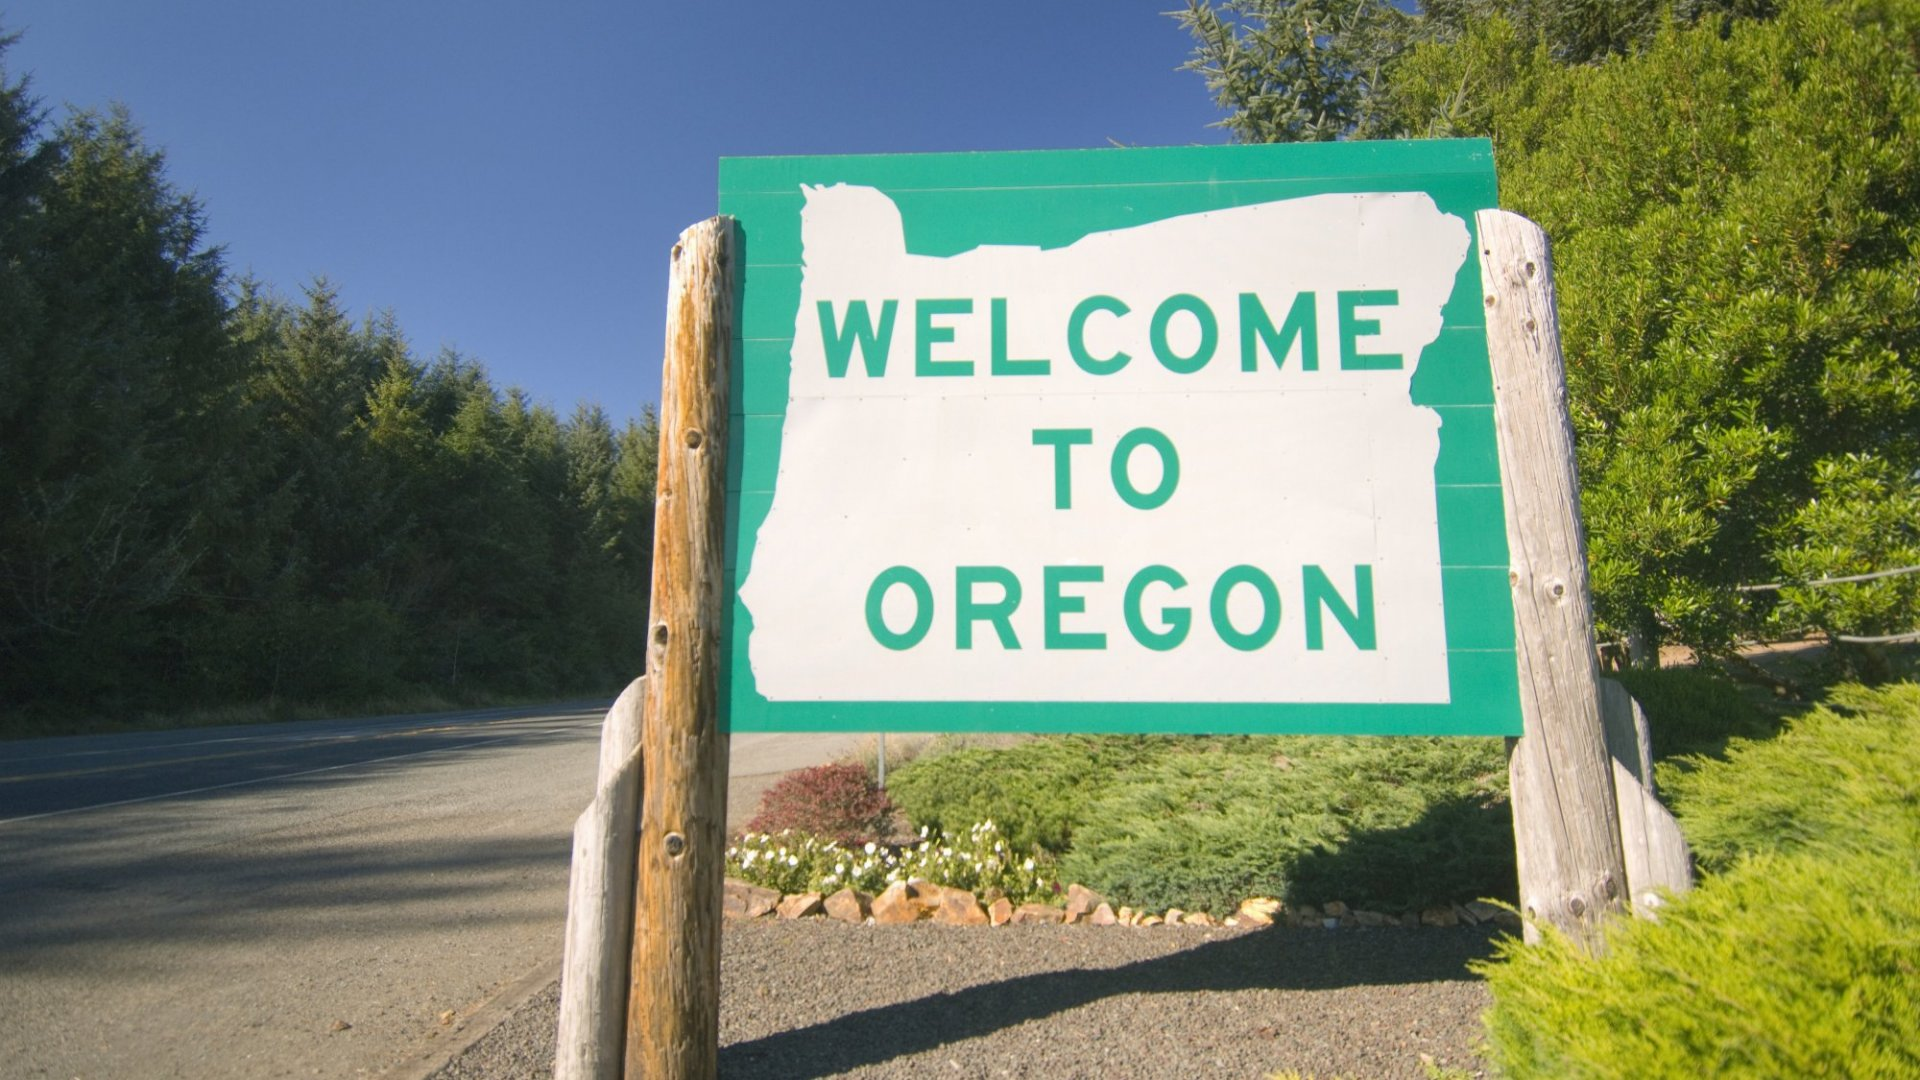 Portland, Oregon already has dozens of medical marijuana dispensaries. Now the city and the rest of the state are awaiting recreational weed sales becoming legal in October.